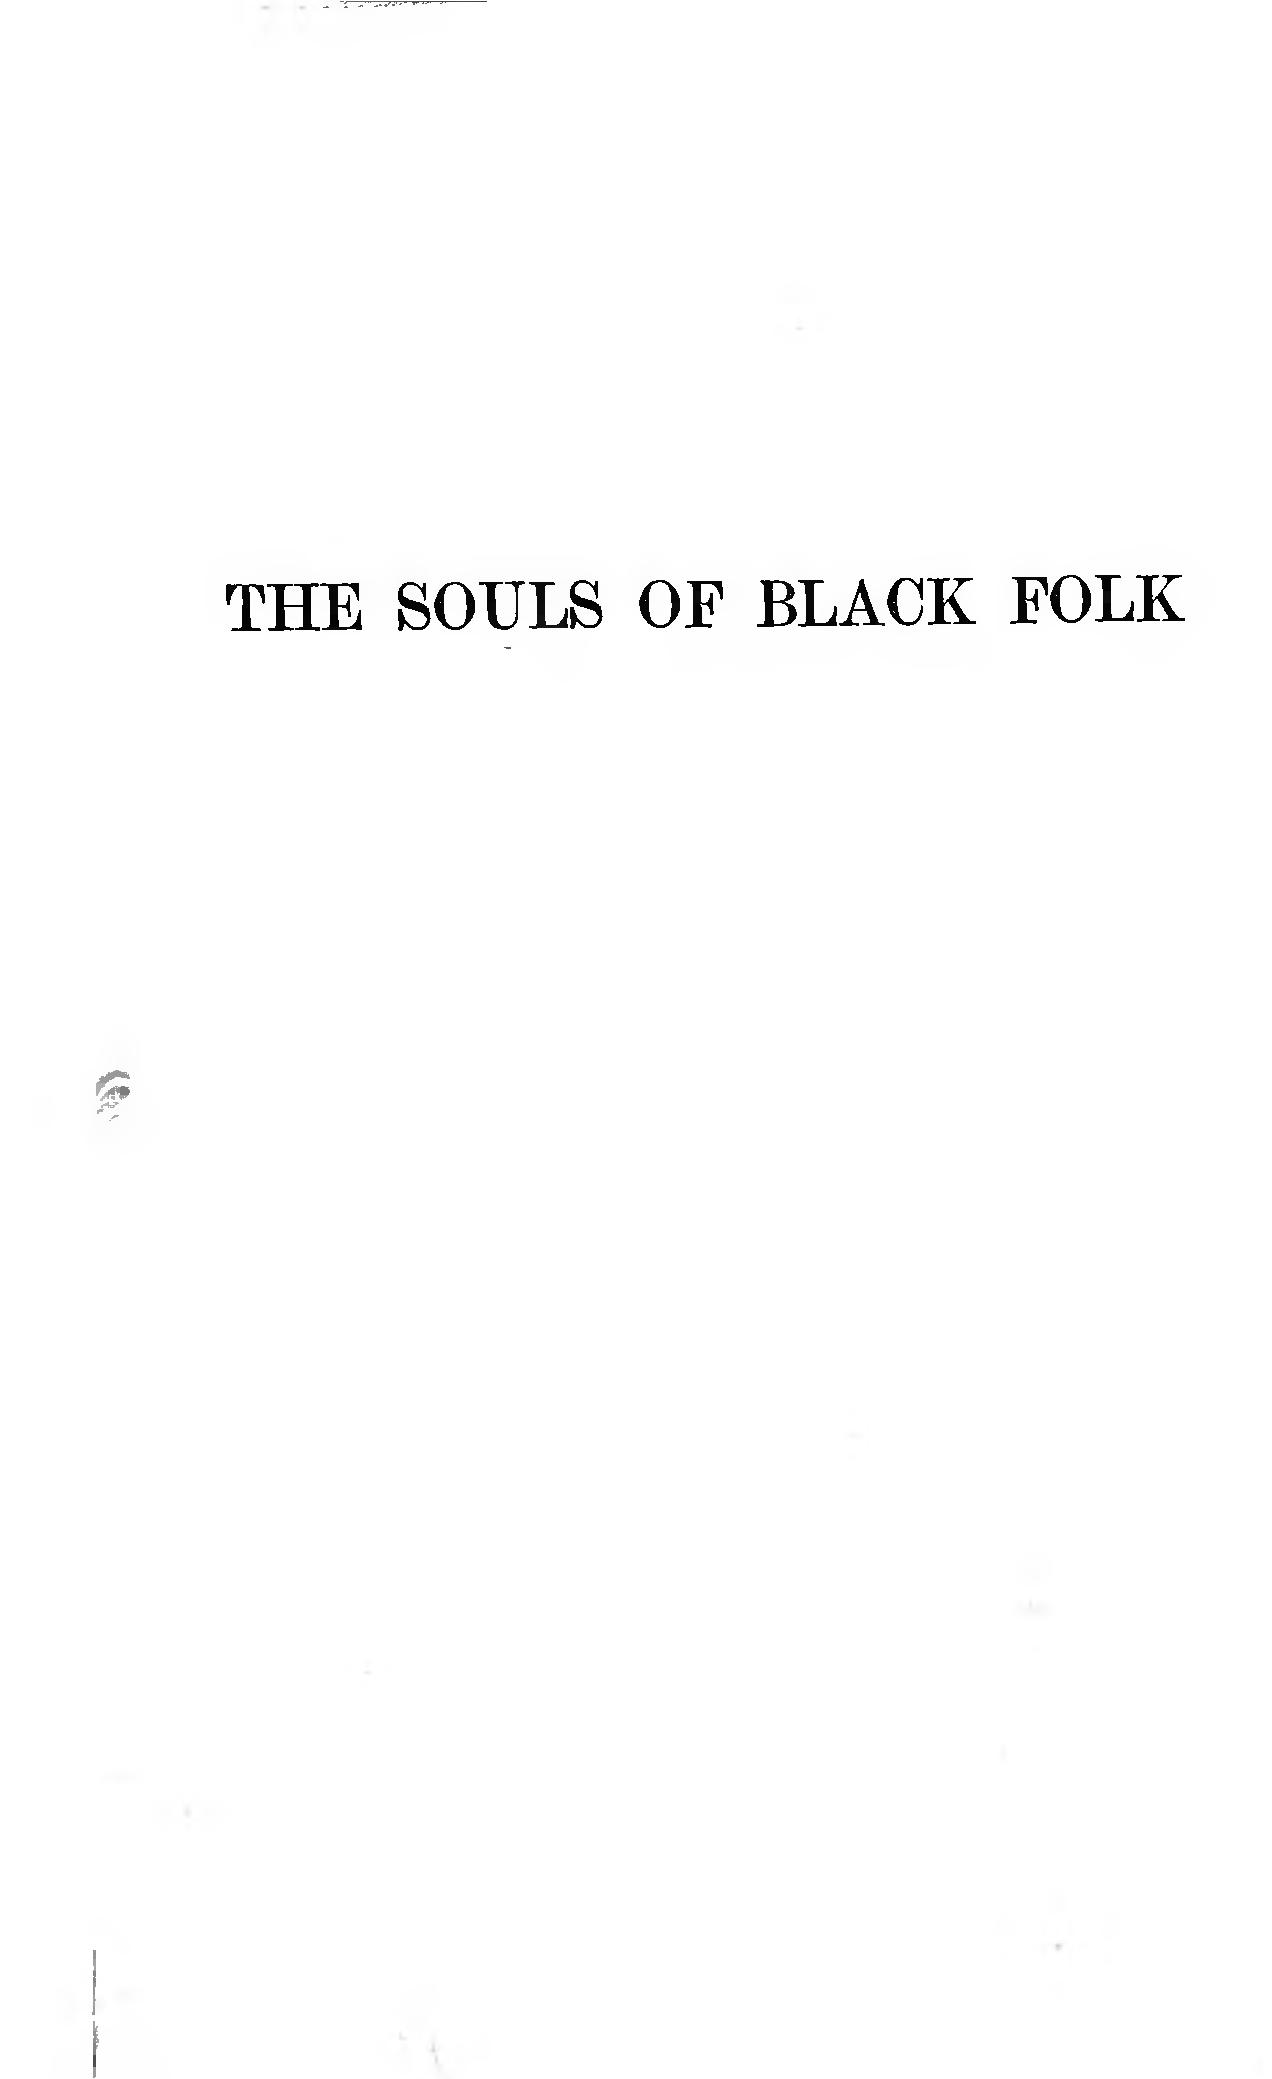 the souls of black folk essays the souls of black folk essays the souls of black folk essays and